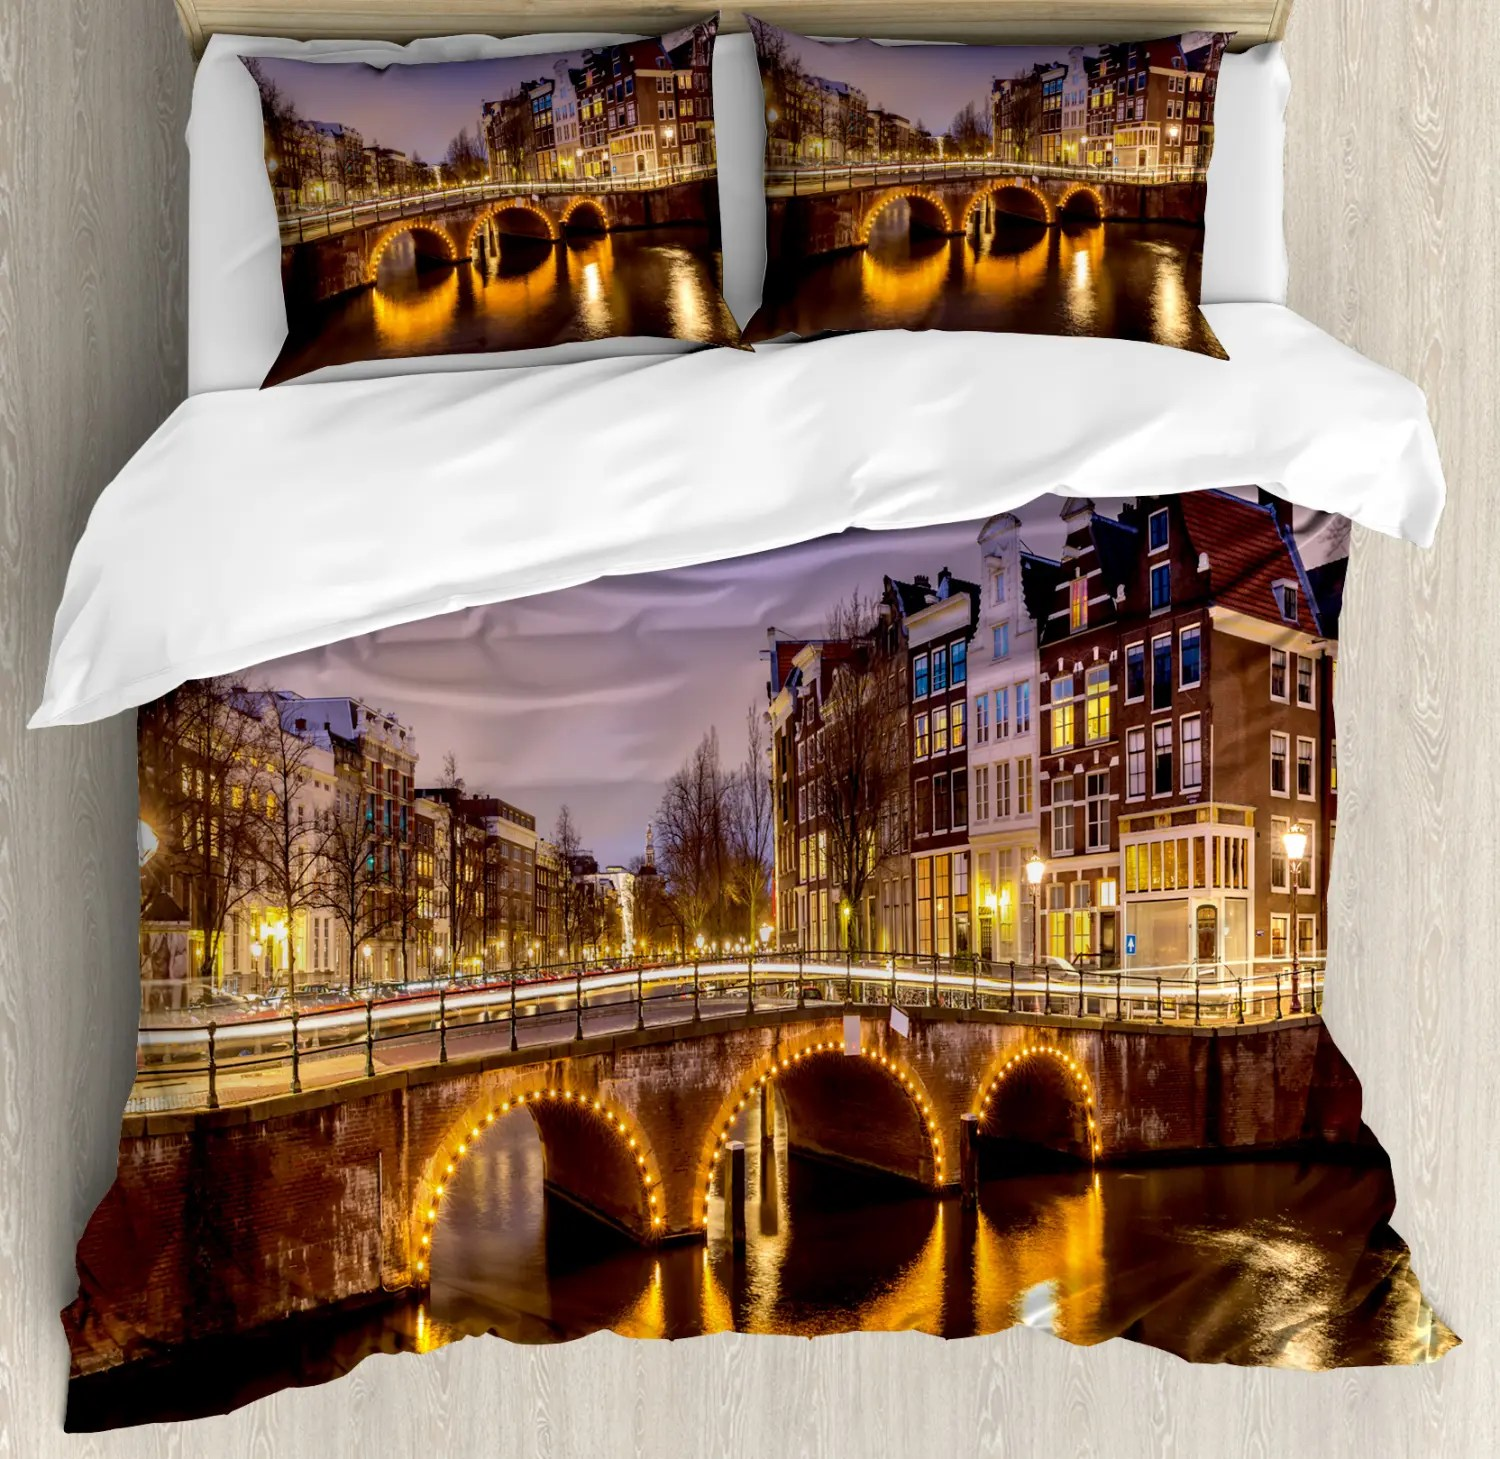 Deadpool Bettwäsche Landscape Cover Set With Pillow Shams Old Bridge European Print